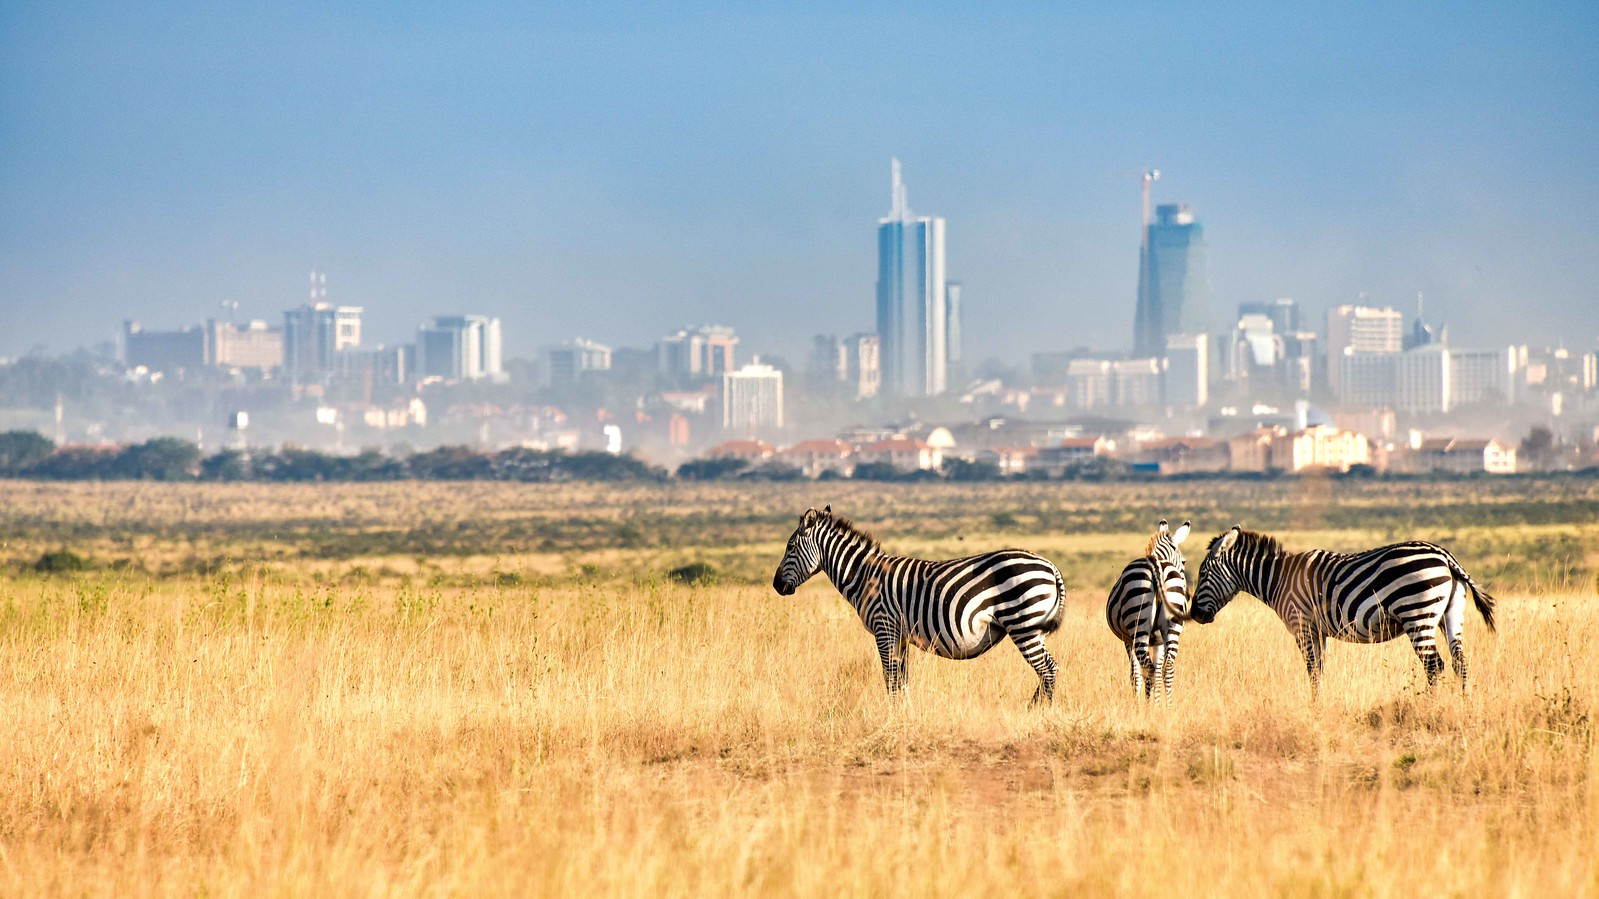 Things To Do in Nairobi - Nairobi National Park - Zebras